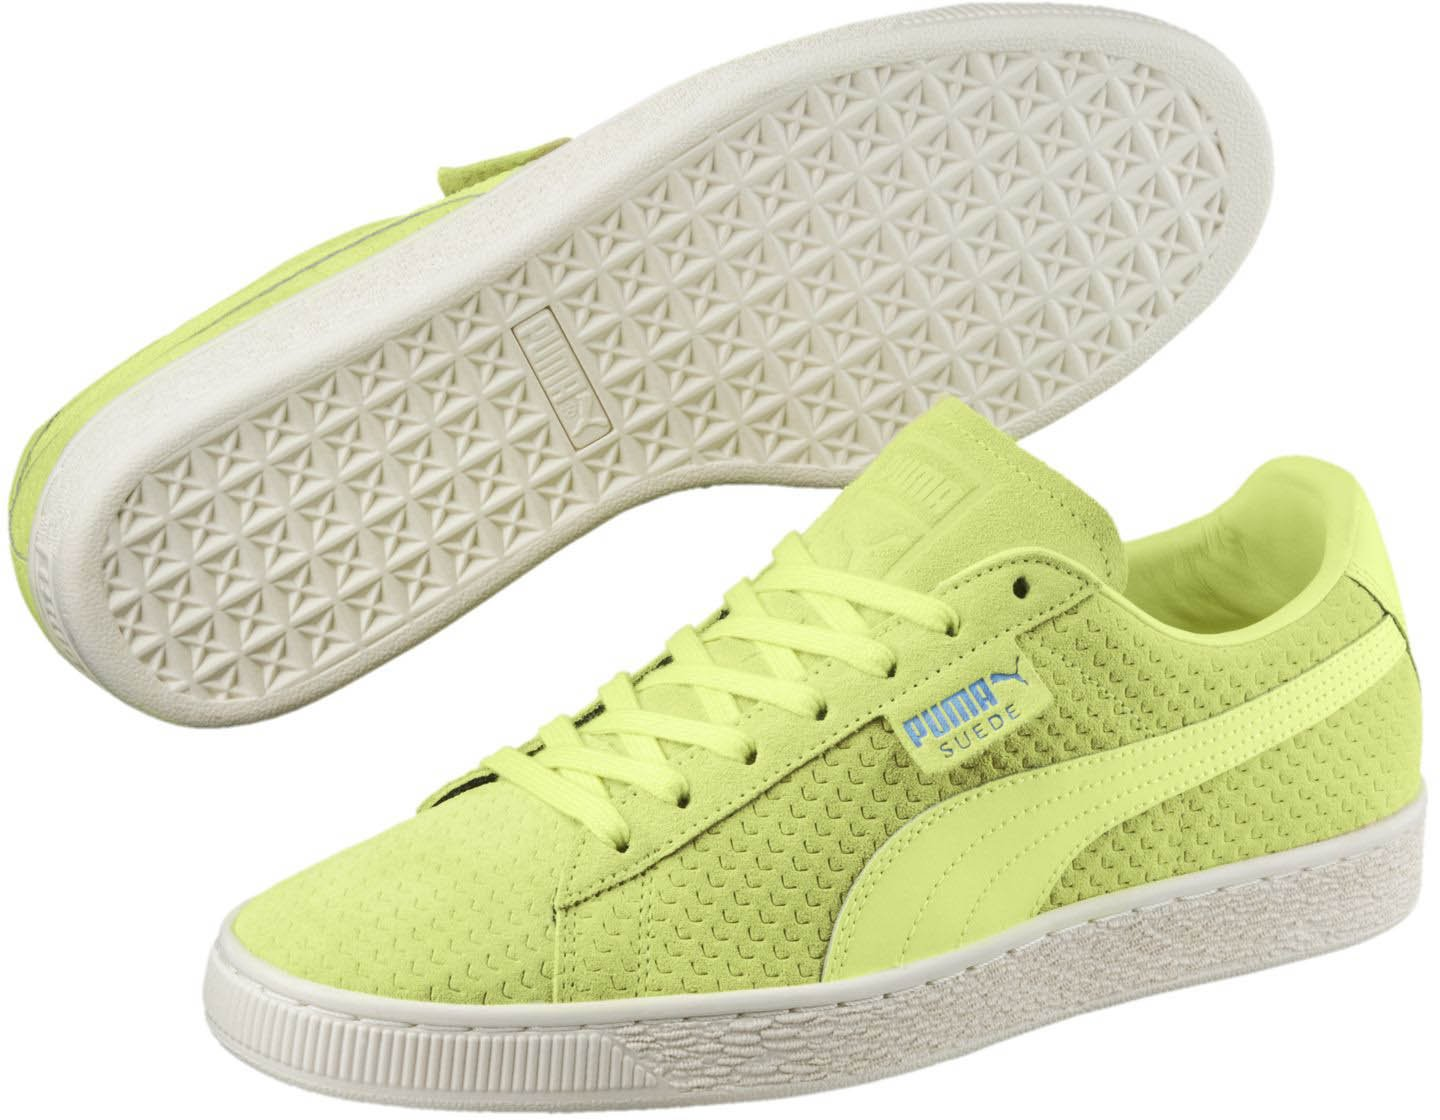 PUMA Women's Suede Classic Perforati WN's Sneaker B076KRFH22 9.5 M US|Sunny Lime-whisper White